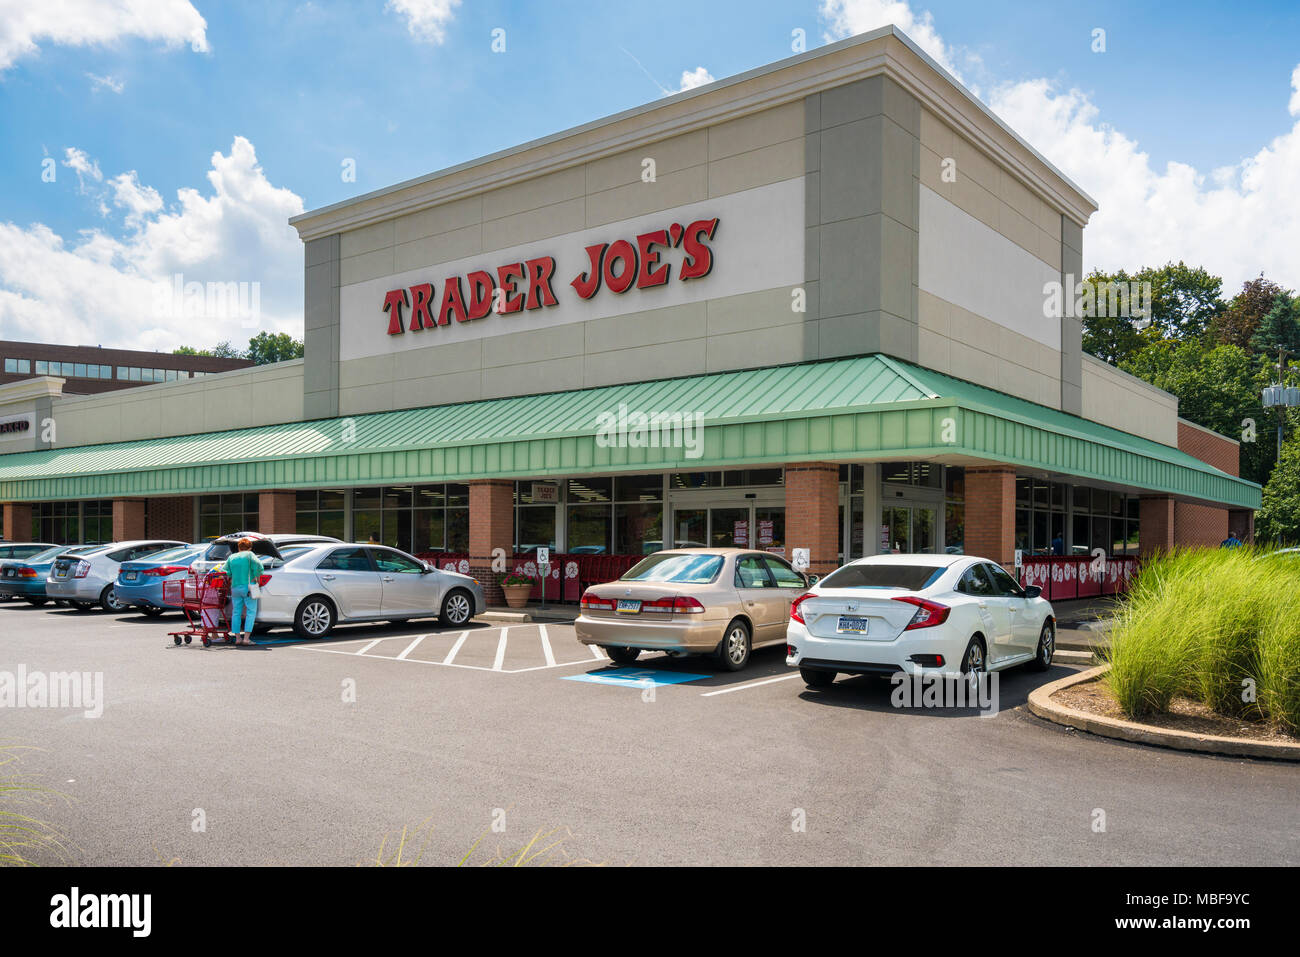 Trader Joe's grocery supermarket, USA. - Stock Image